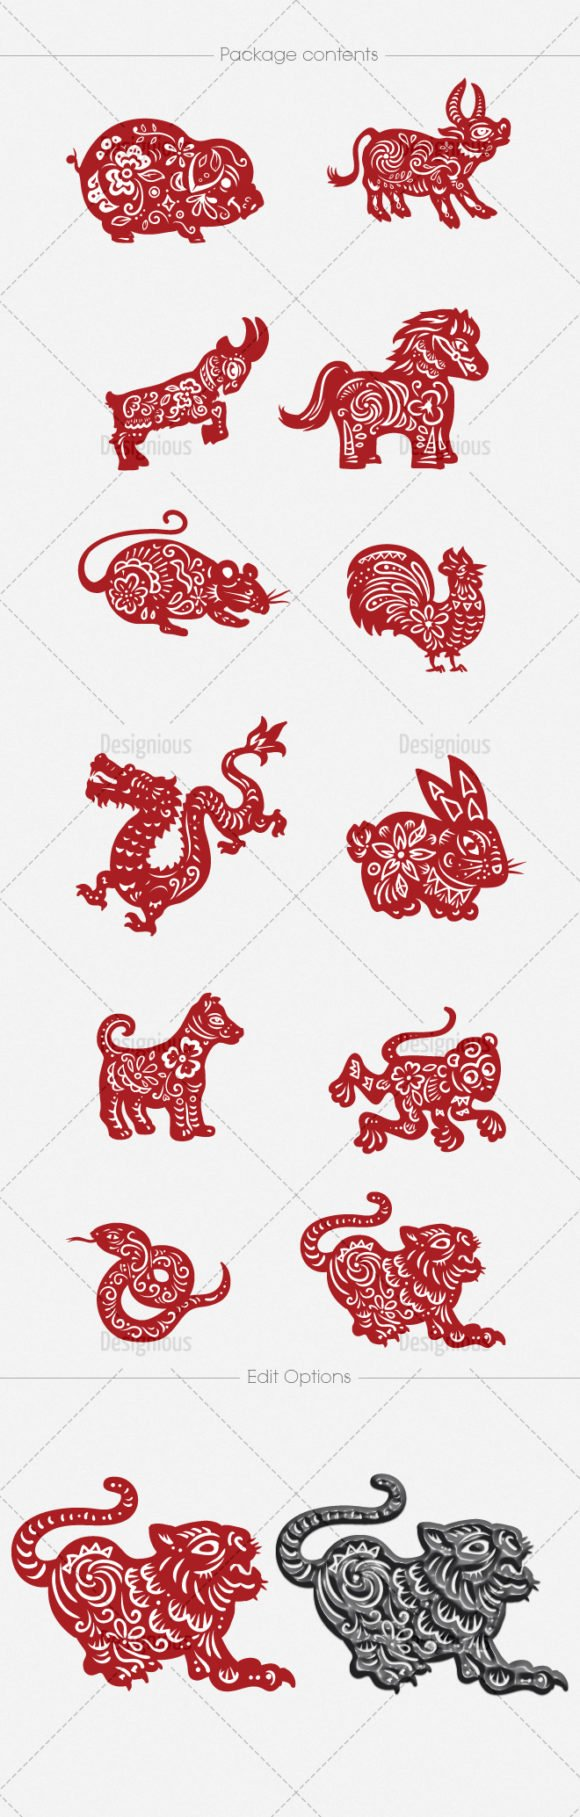 Chinese Zodiac Vector Pack 1 2